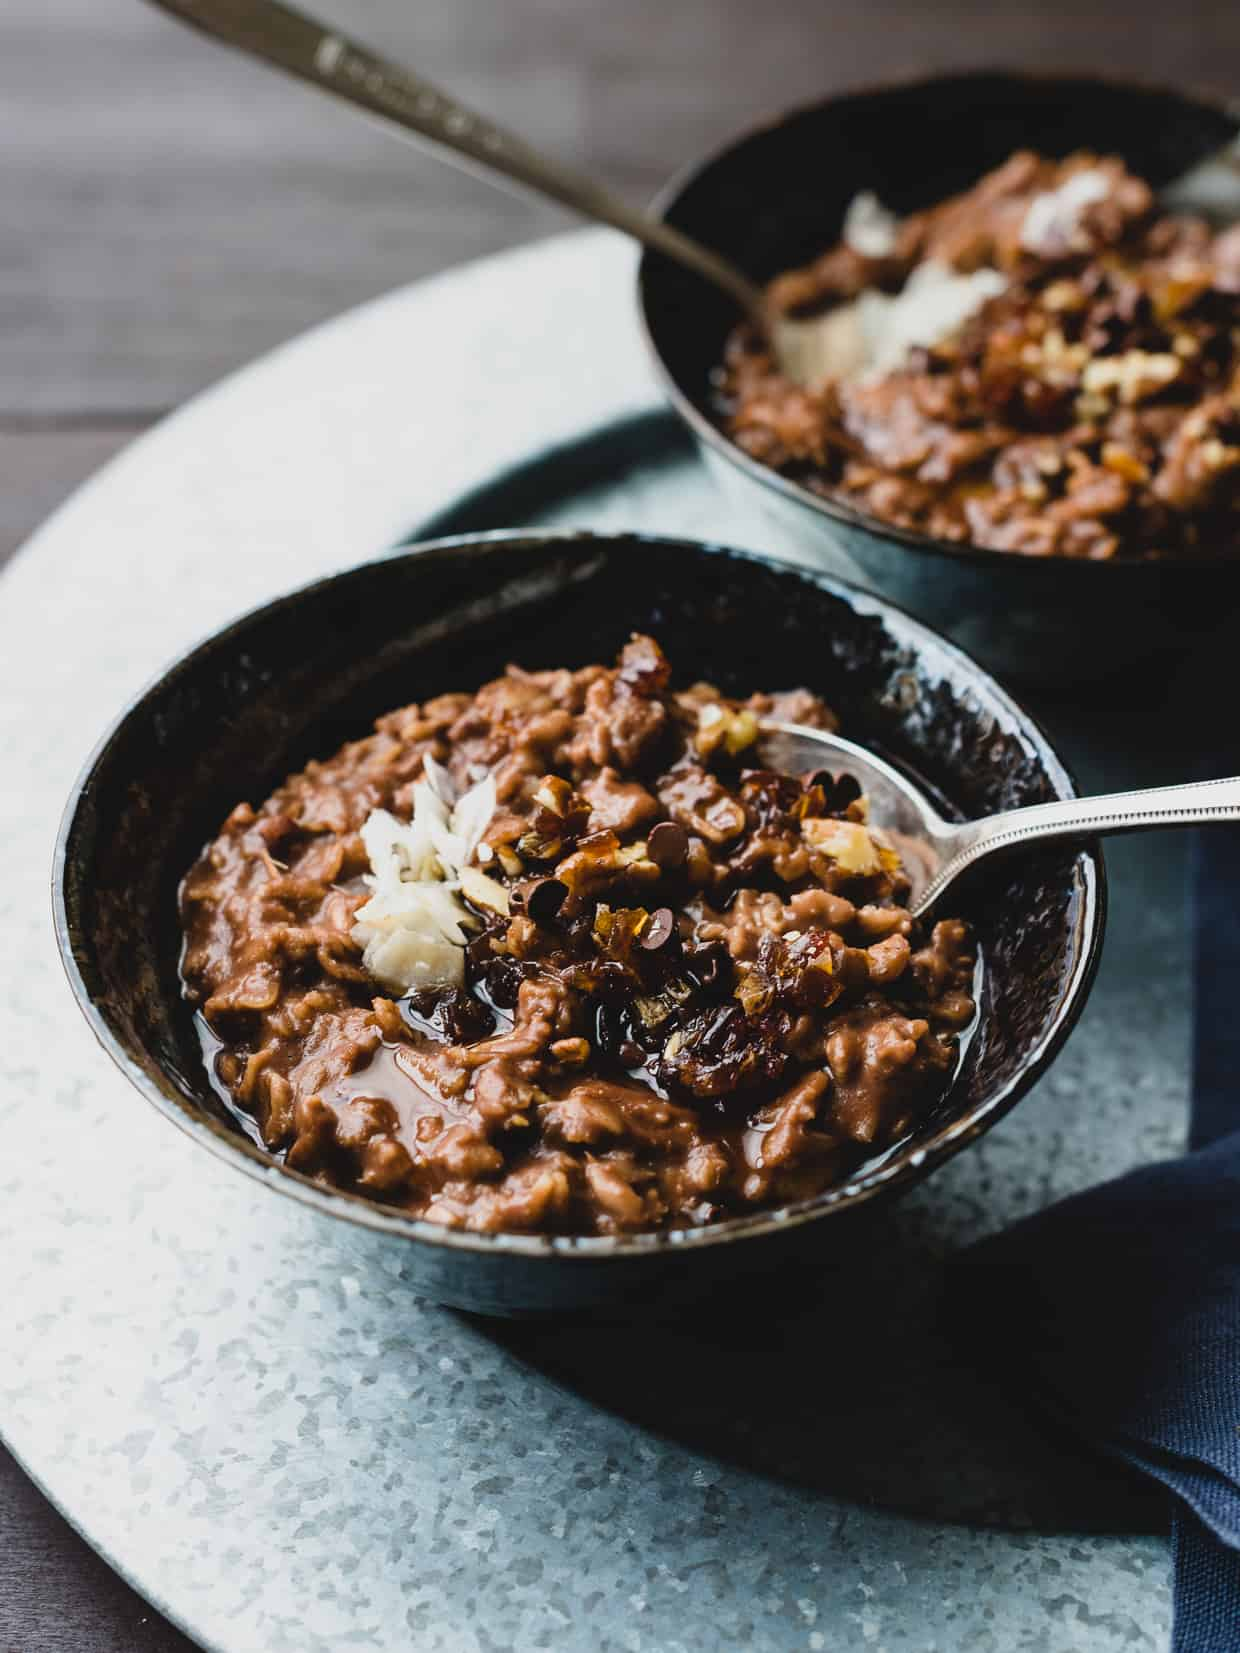 Chocolate for breakfast? Yes. This Chocolate Coconut Oat Porridge recipe lets you indulge without the guilt.